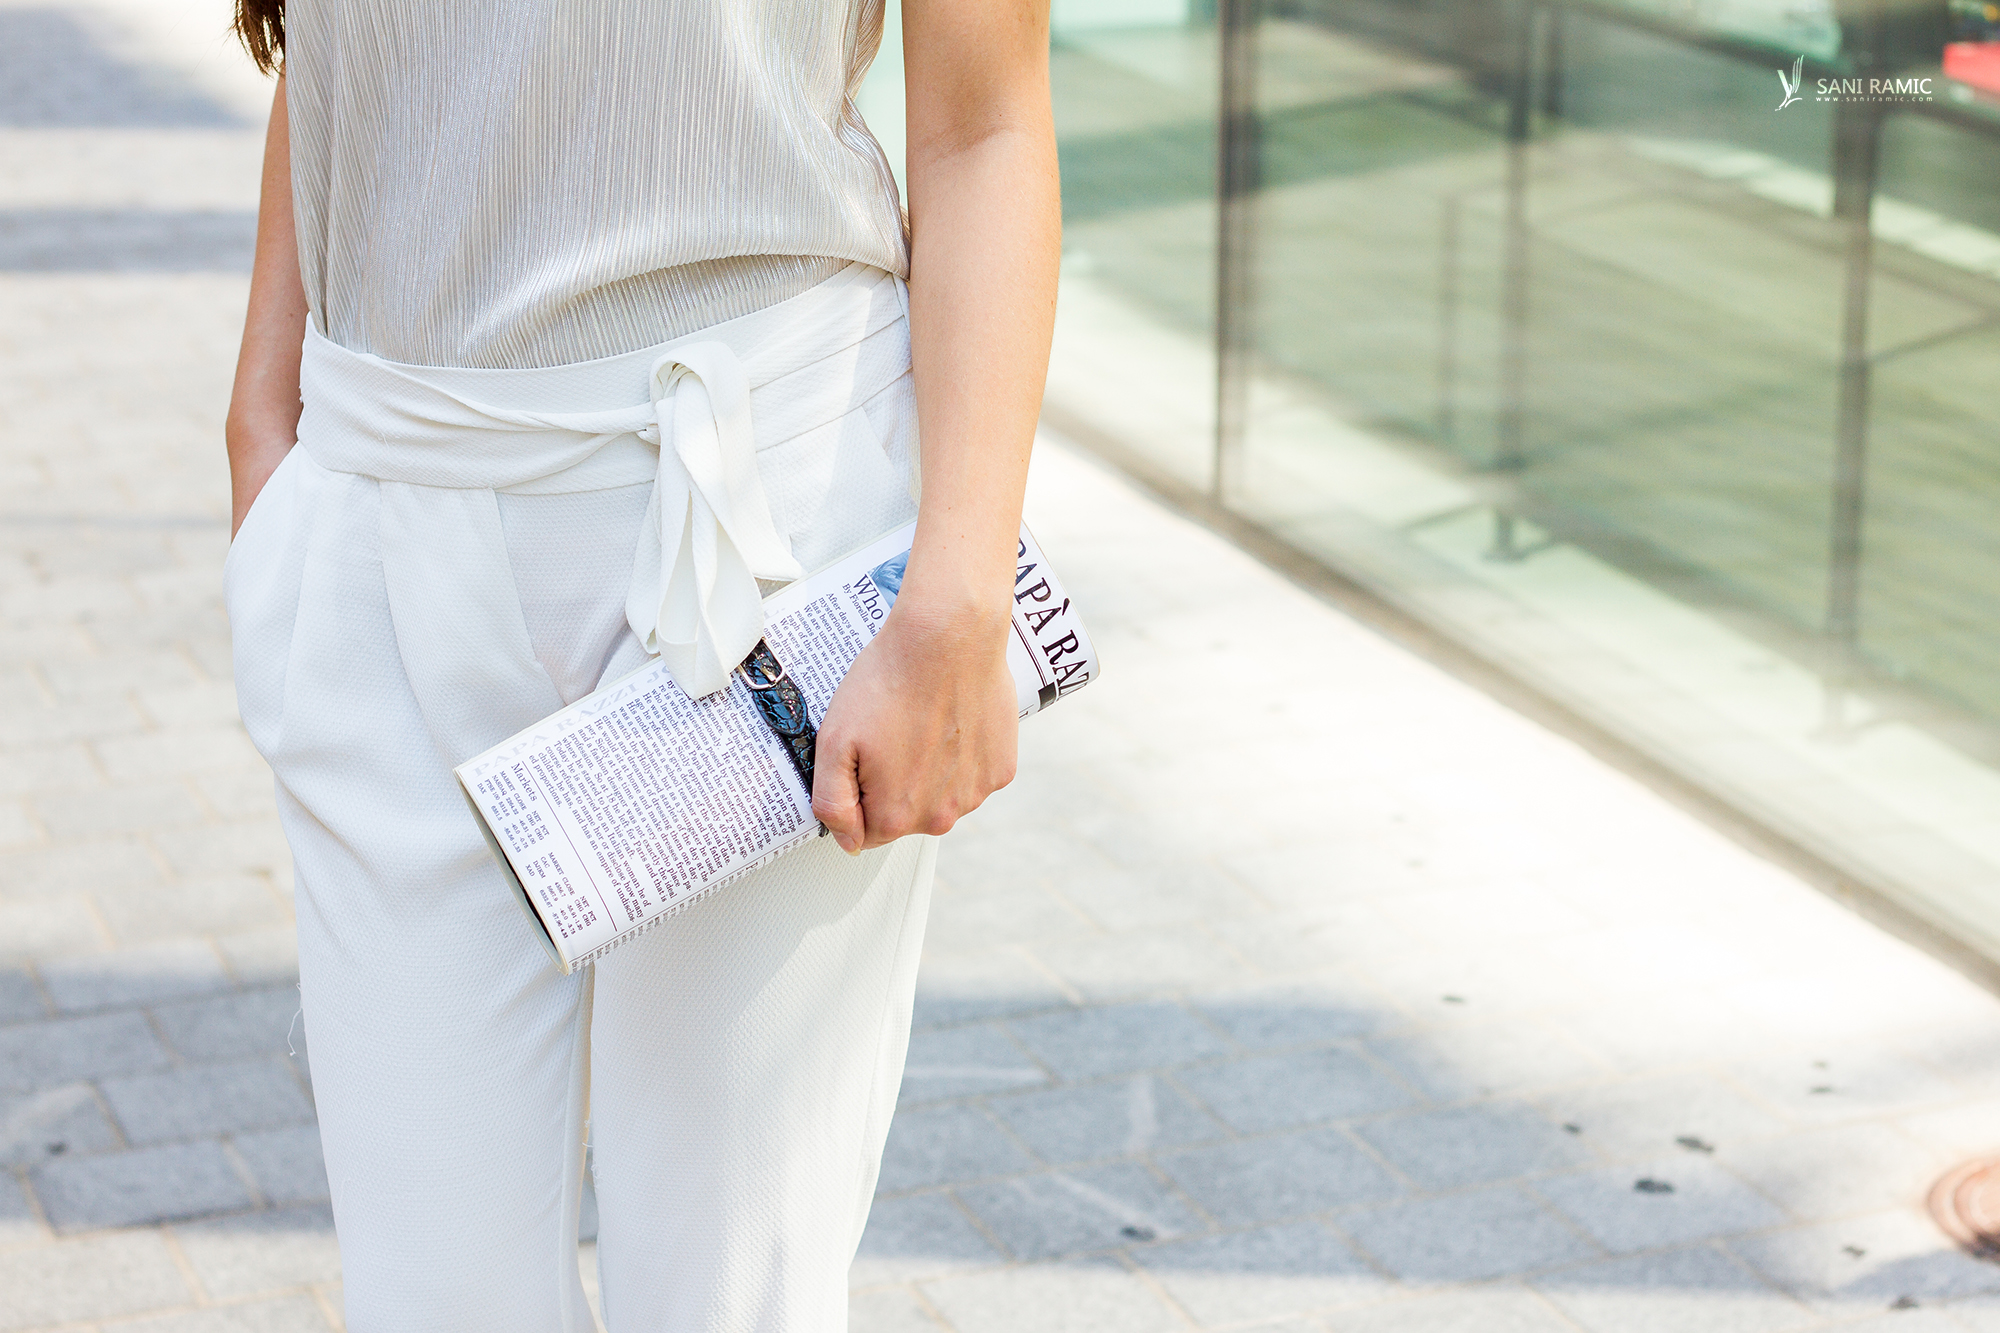 WhiteHighwaistTrousersPaperBagClutch